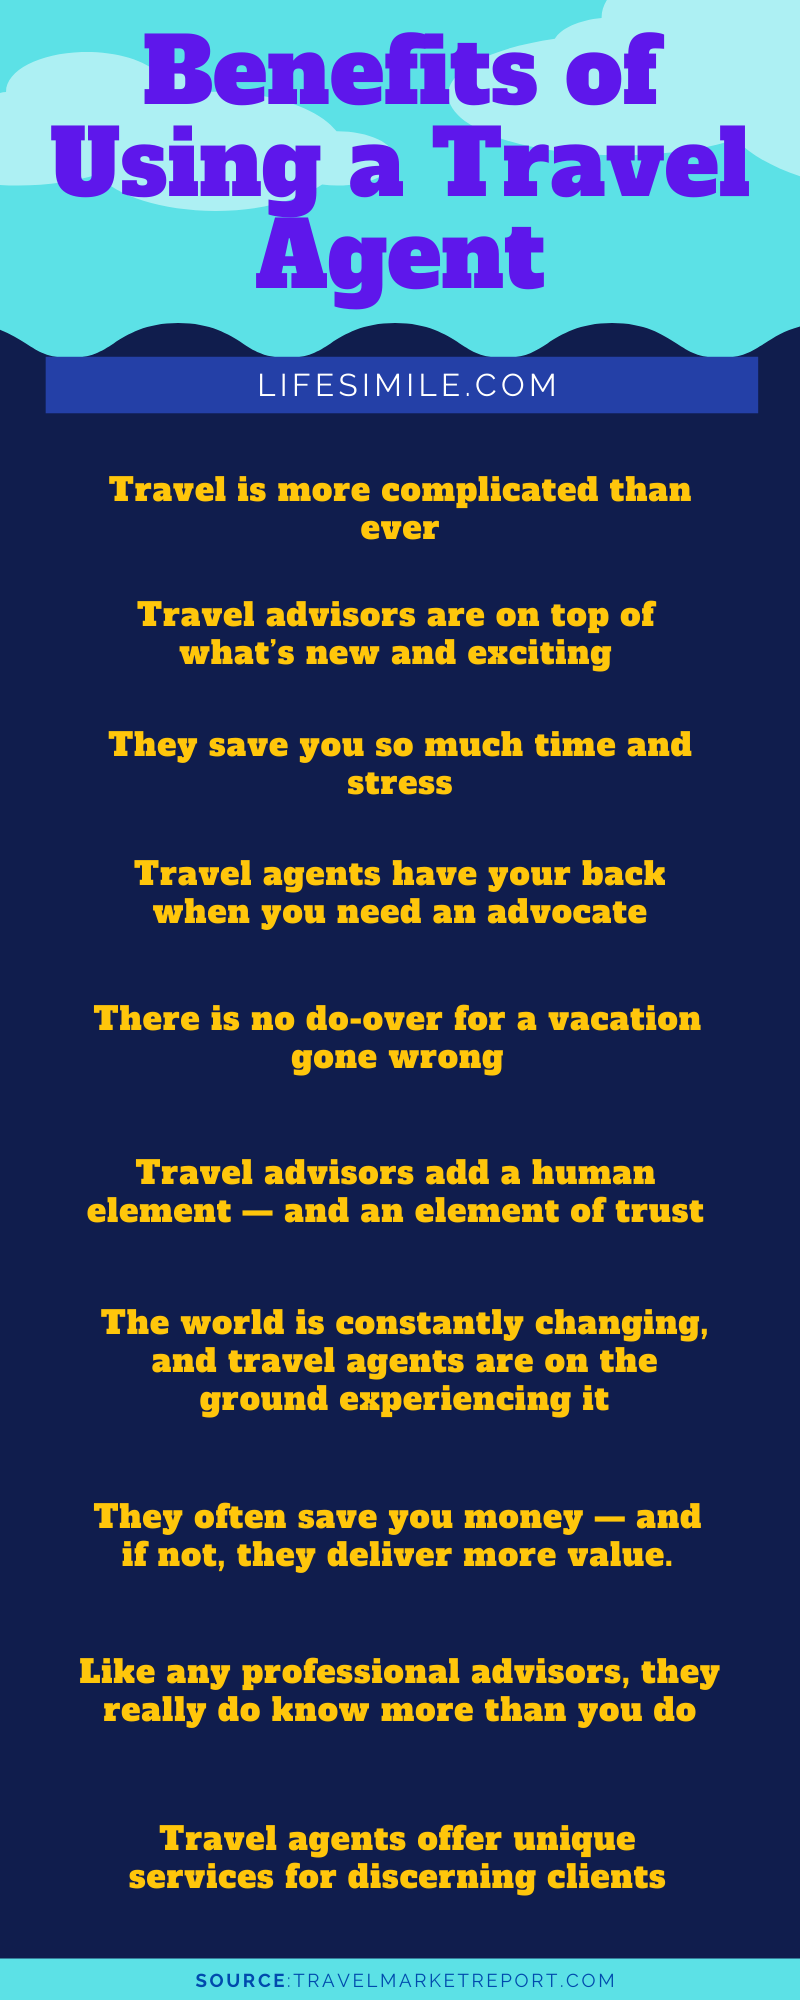 benefits of using a travel agent benefits of a travel agent advantages of using a travel agent benefits of booking with a travel agent benefits of booking through a travel agent perks of using a travel agent advantages of using travel agent advantages of booking through a travel agent benefits of using a travel agent for a cruise benefits of using a disney travel agent benefits of having a travel agent